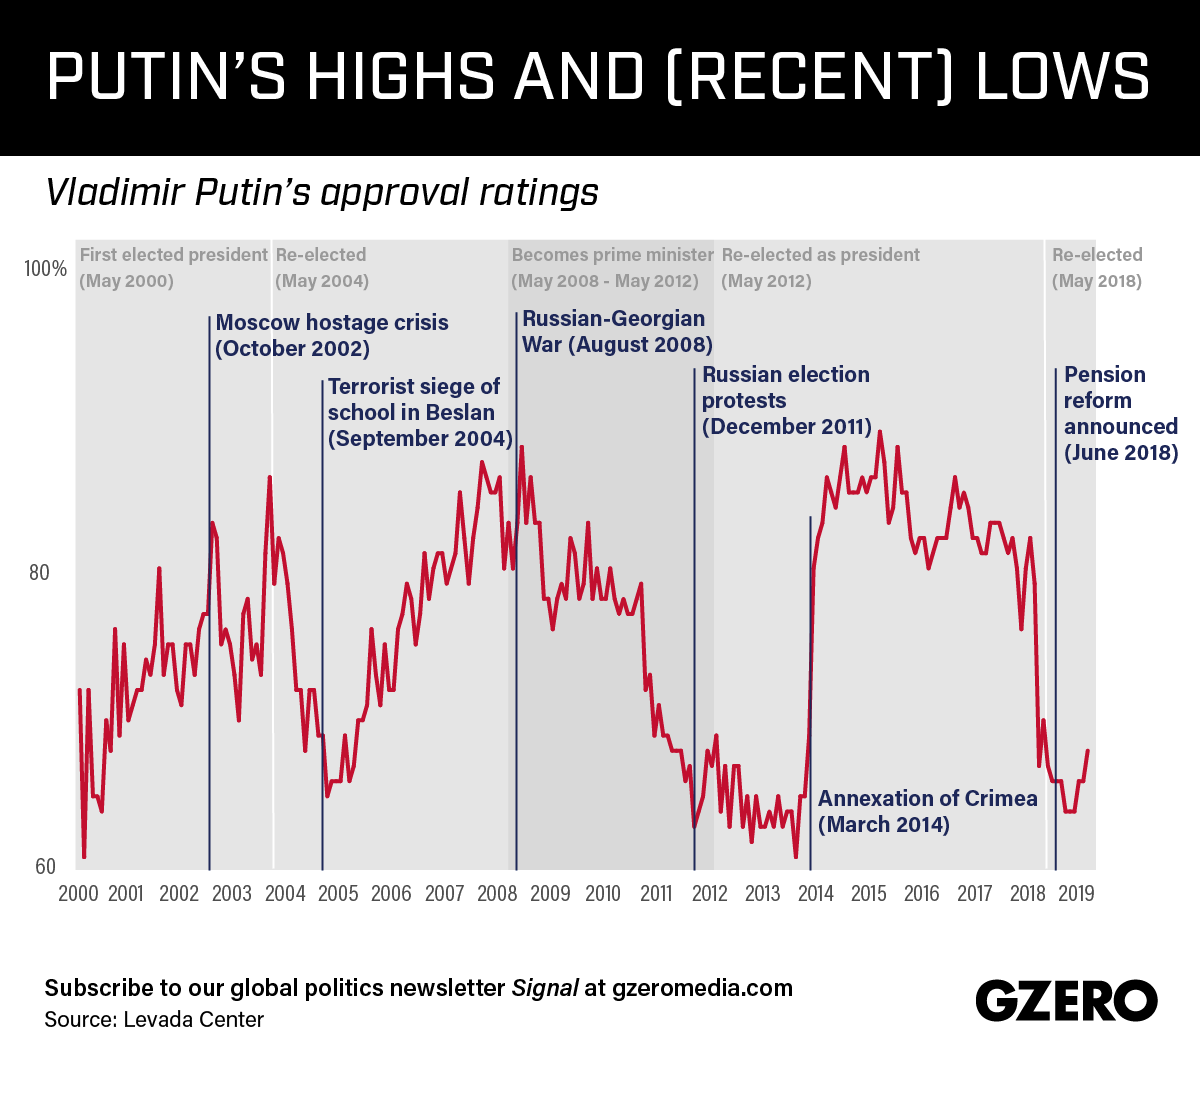 Graphic Truth: Putin's Highs and (Recent) Lows